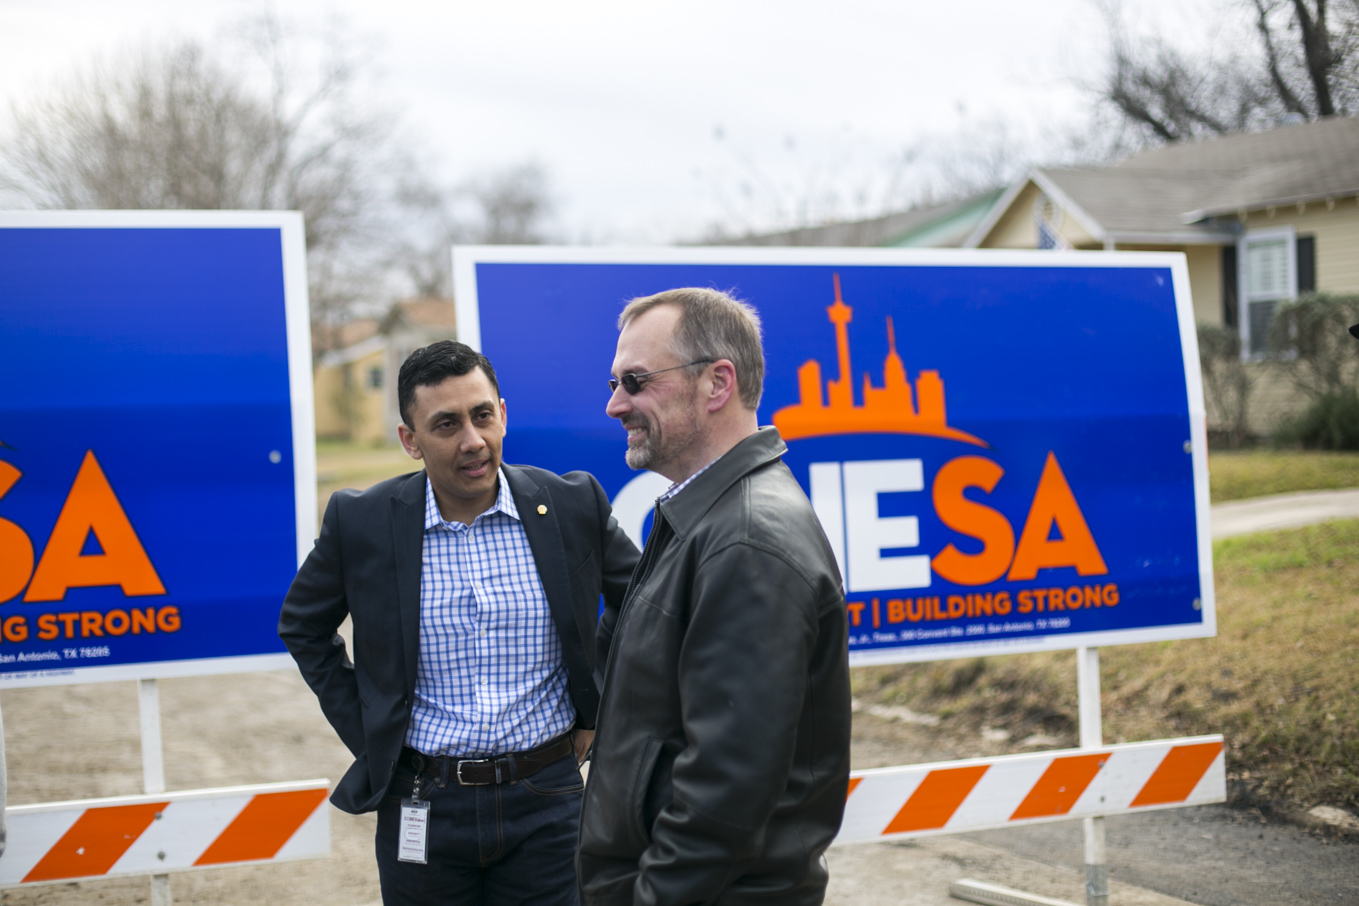 From left: Councilman Cris Medina (D7) speaks with OneSA Campaign Manager Christian Archer.